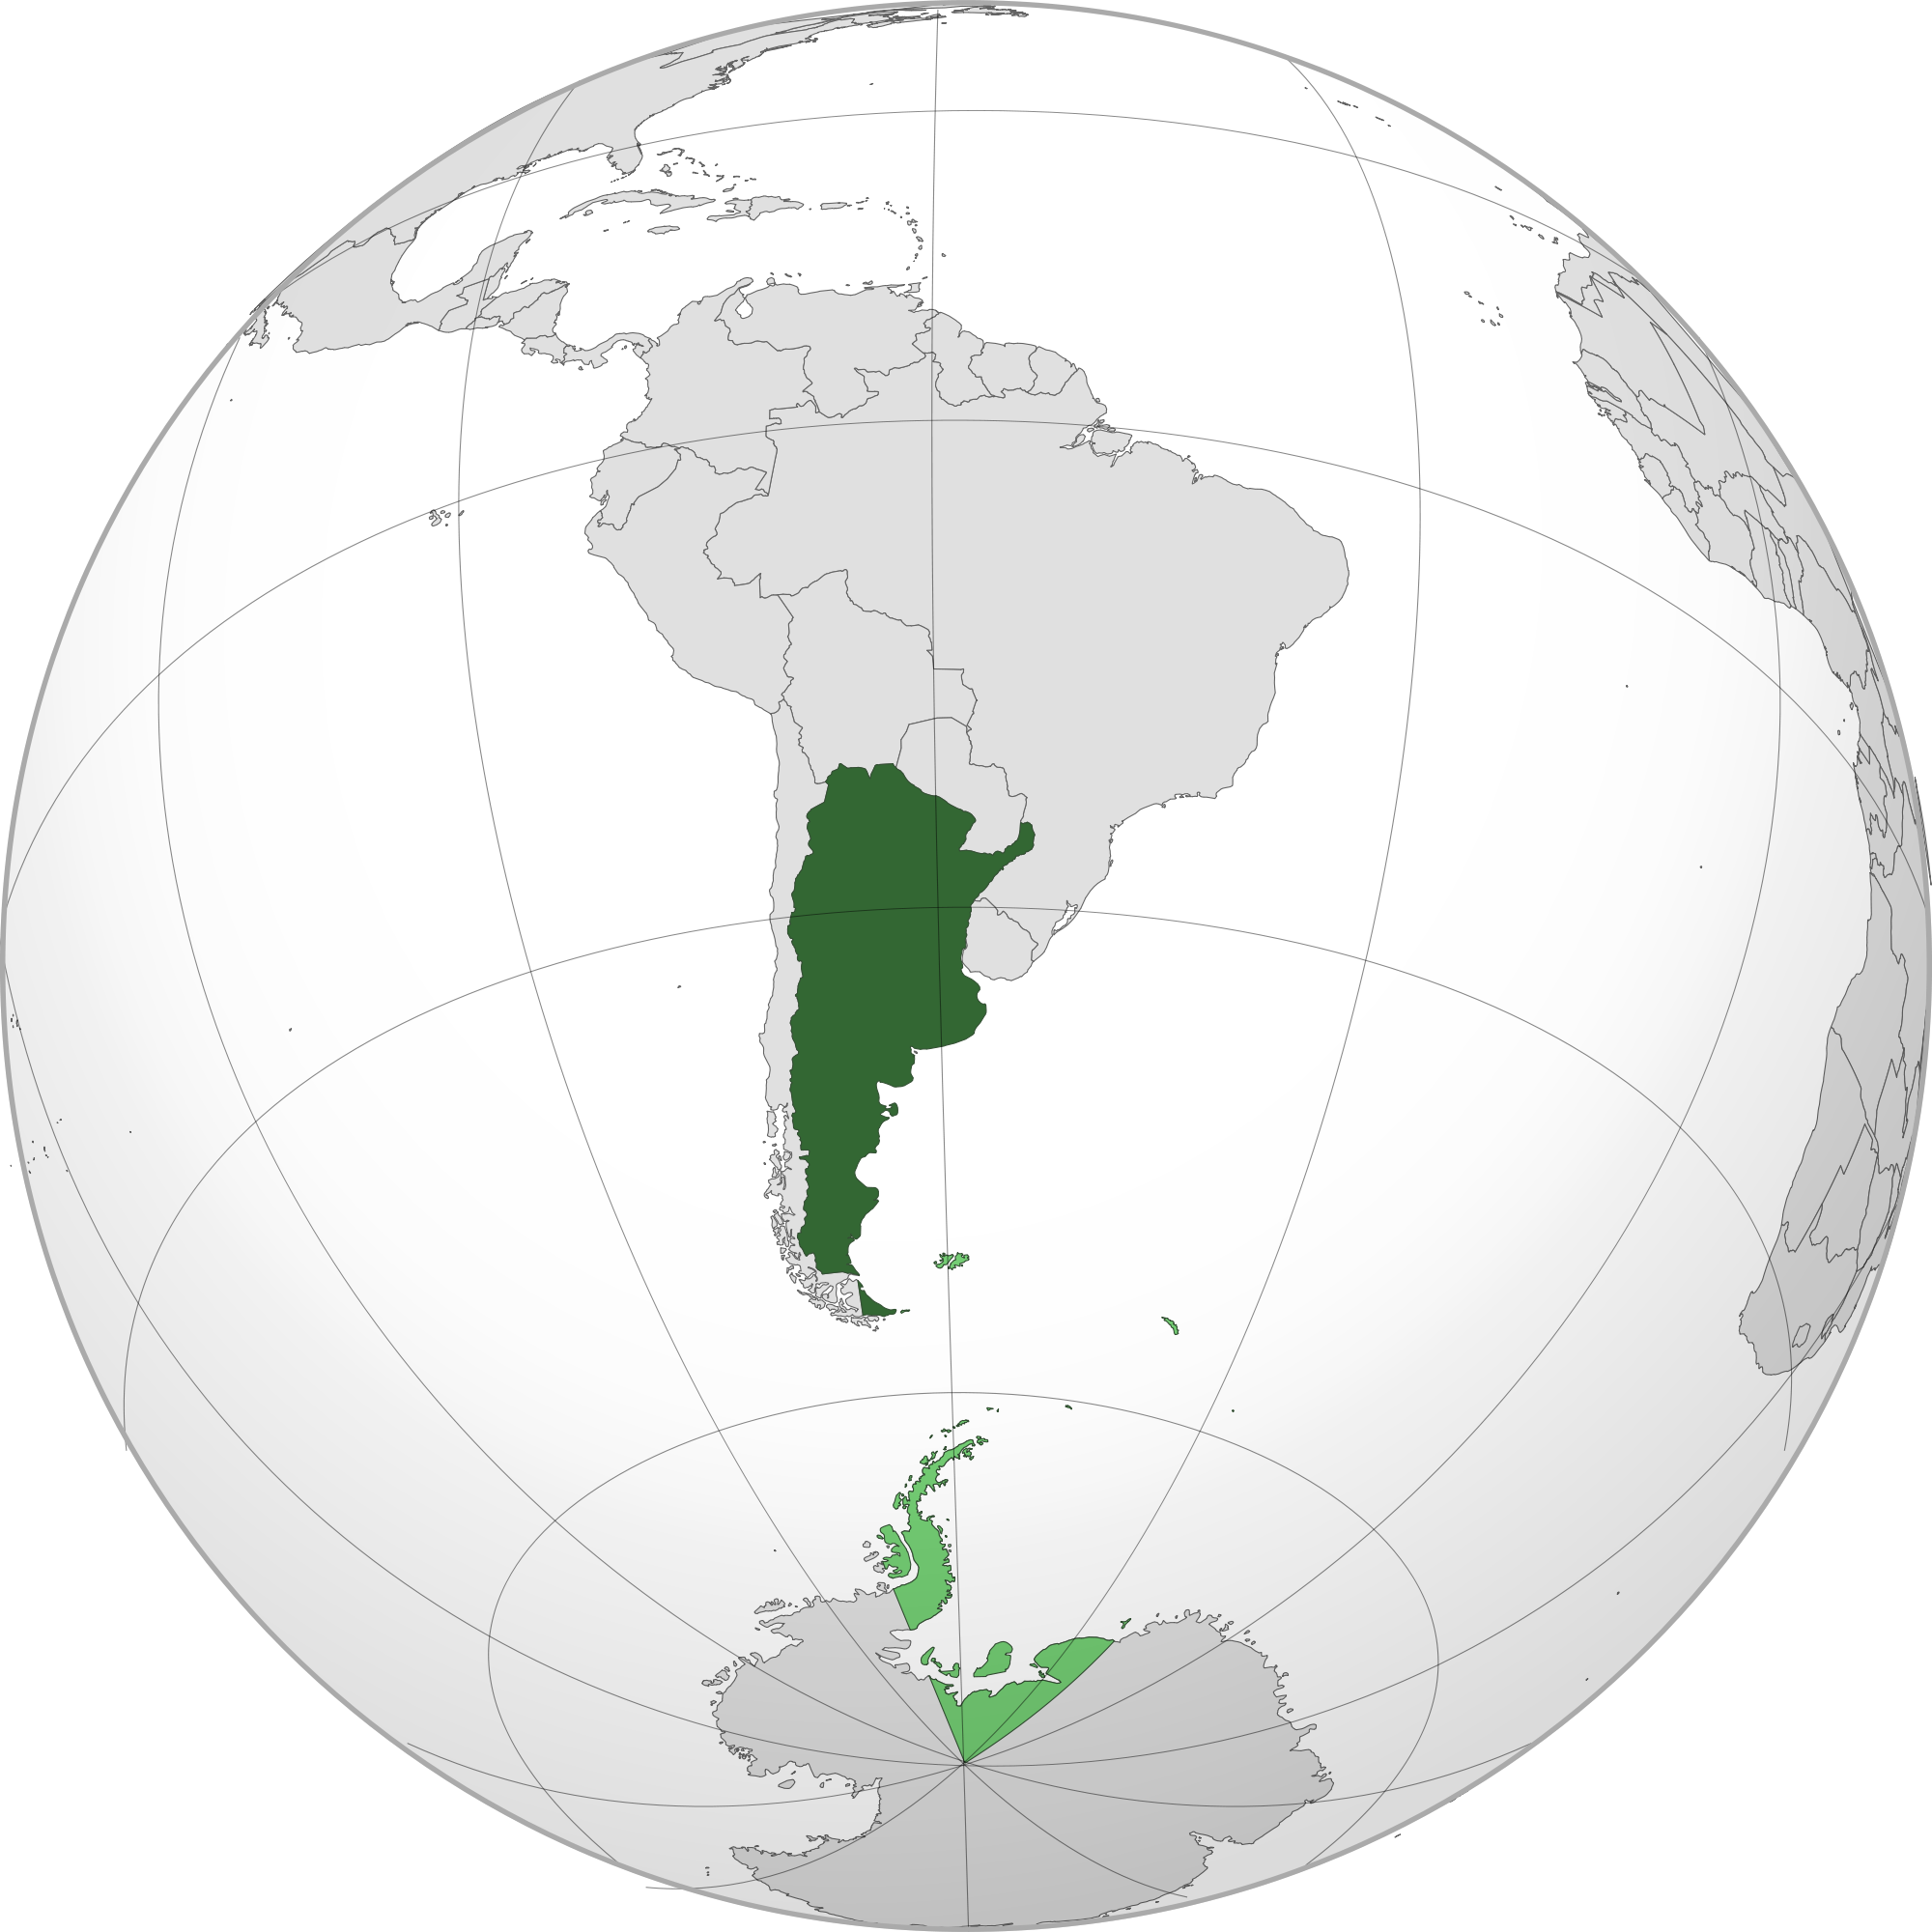 Location of the argentina in the World Map